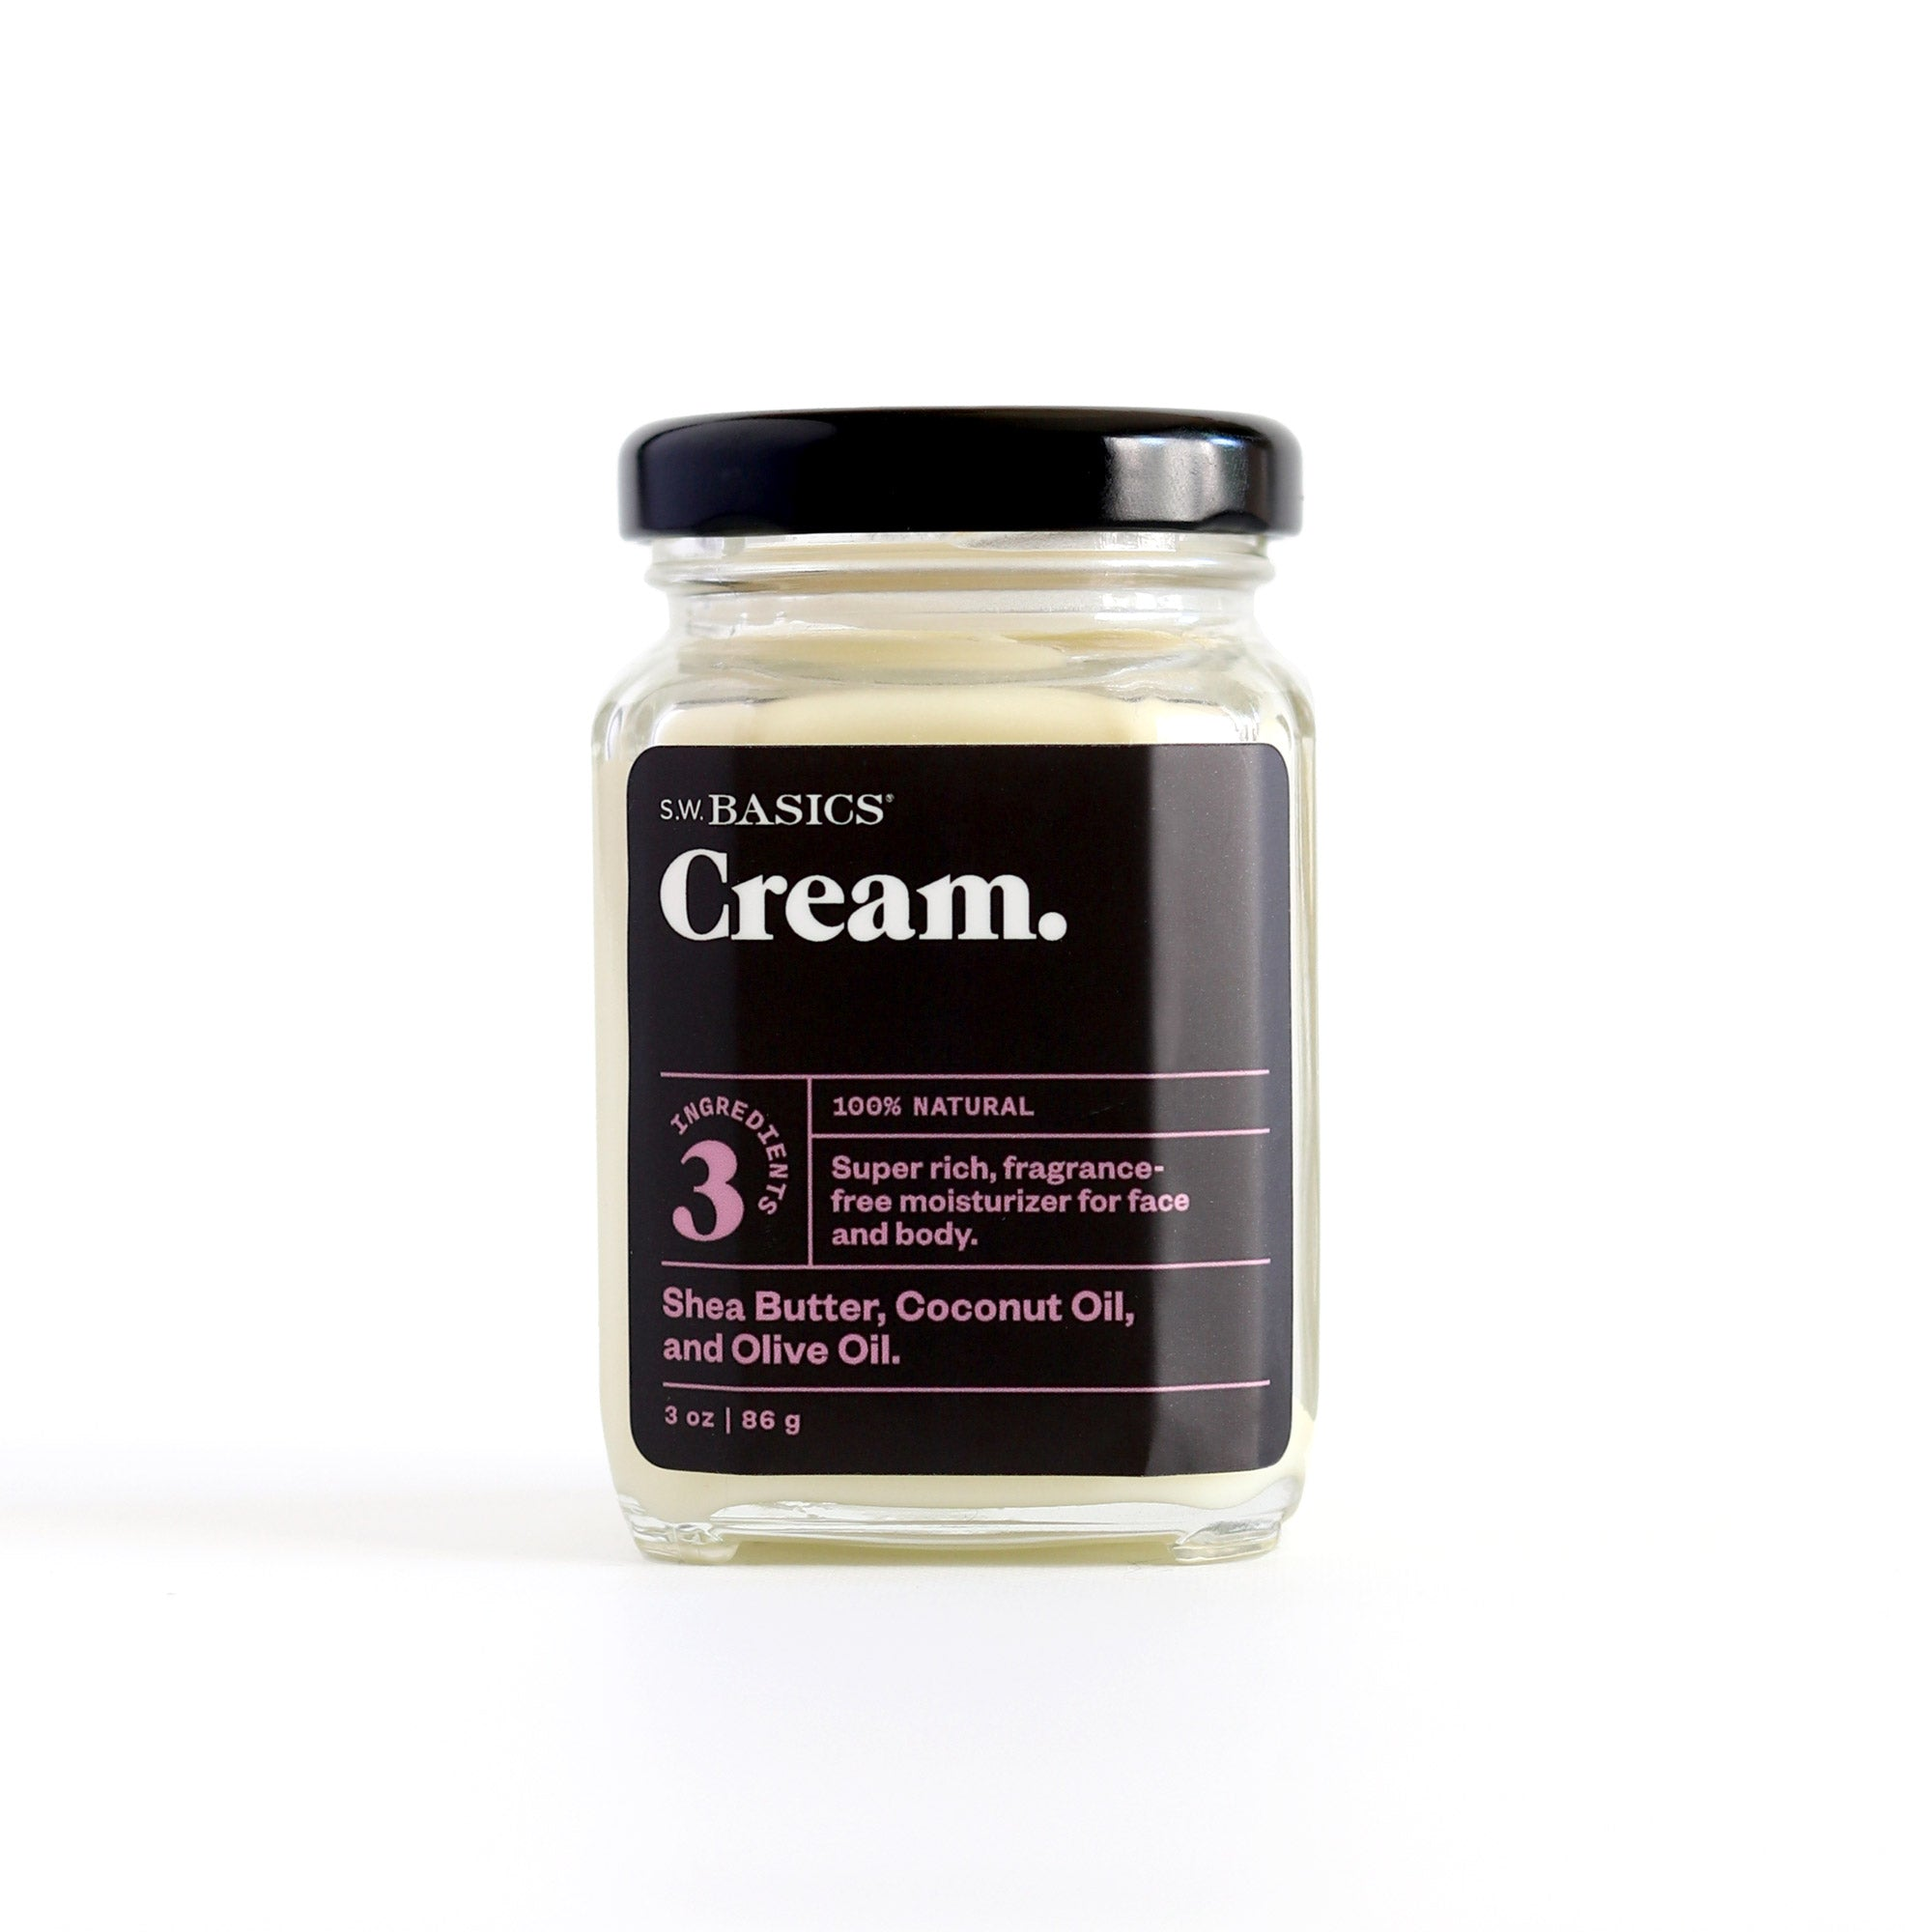 Cream (3 oz. Jar)